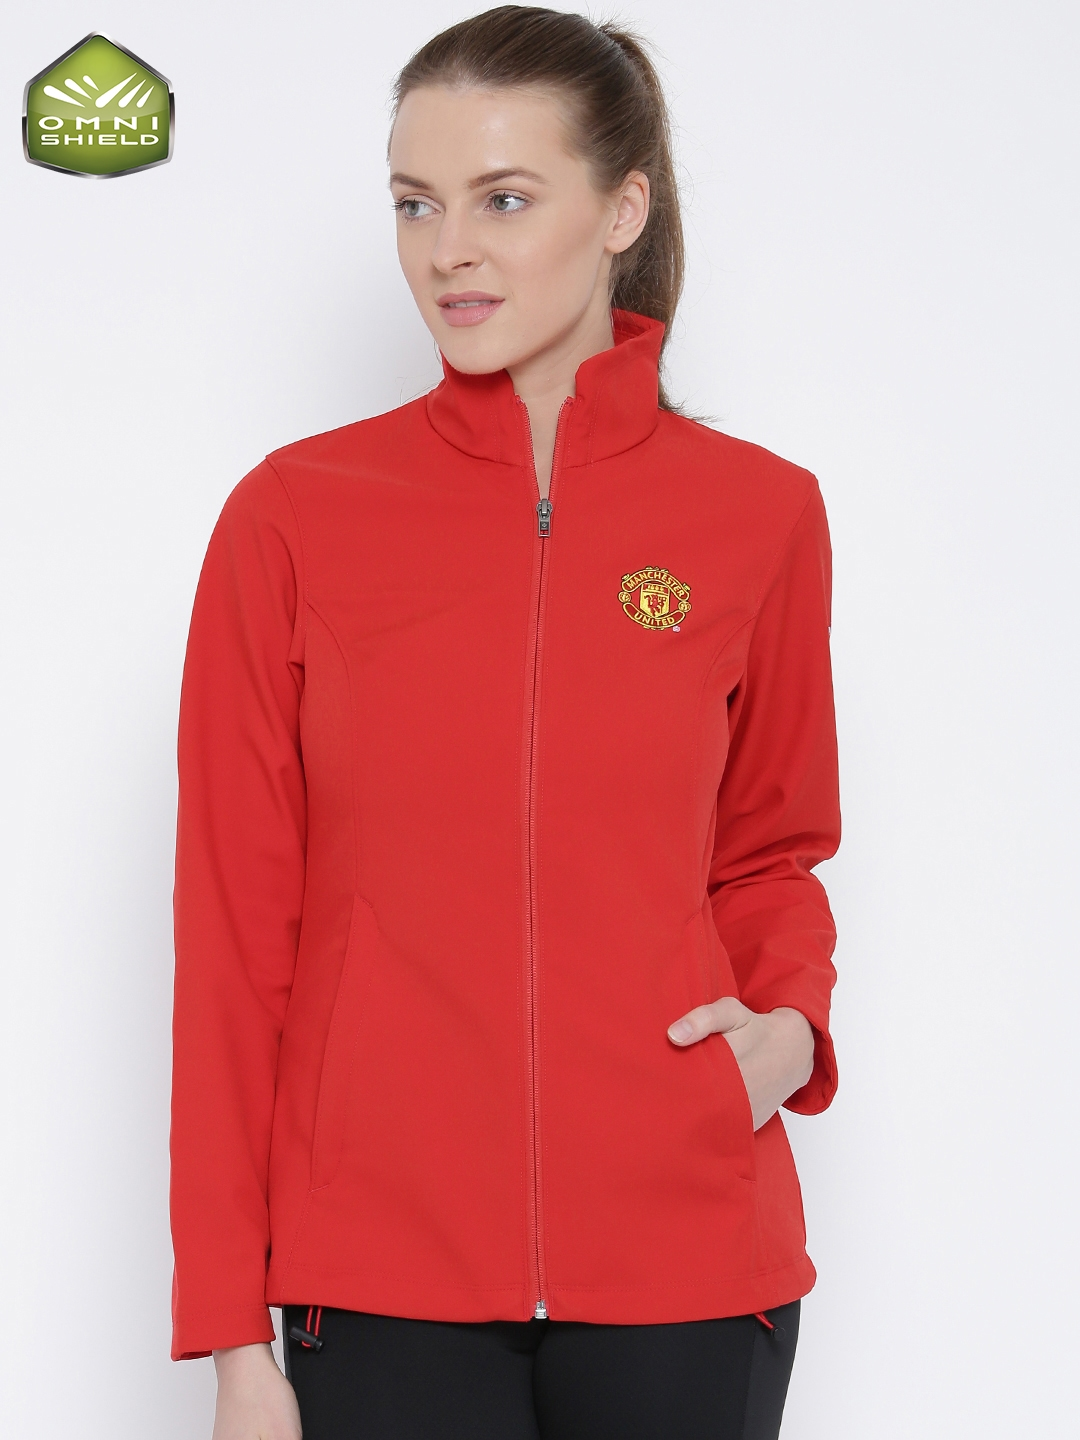 27790e4bc5c1c Buy Columbia Red Kruser Ridge Softshell Manchester United F.C. Wind   Water  Resistant Jacket - Jackets for Women 1620835